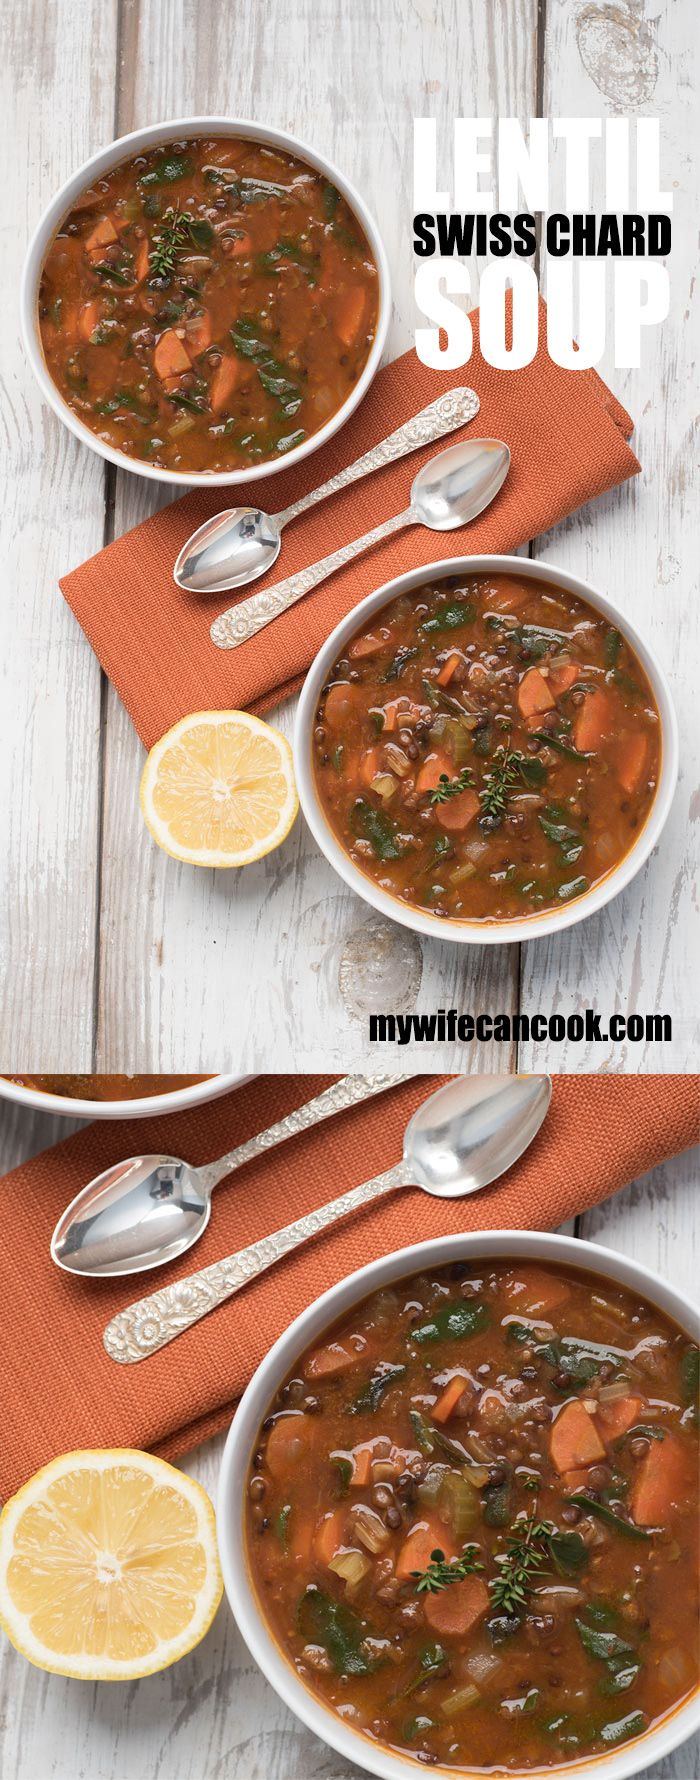 Easy Swiss Chard Lentil Soup Recipe. This recipe is vegan, gluten-free, and was made in our Instant Pot!  You'll be impressed at how much goodness is packed into one bowl.  It's the perfect meal for a cold day. And, it's definitely a great meal to get your eating back on track if you have strayed from healthy eating habits. And have you heard about the Instant Pot?